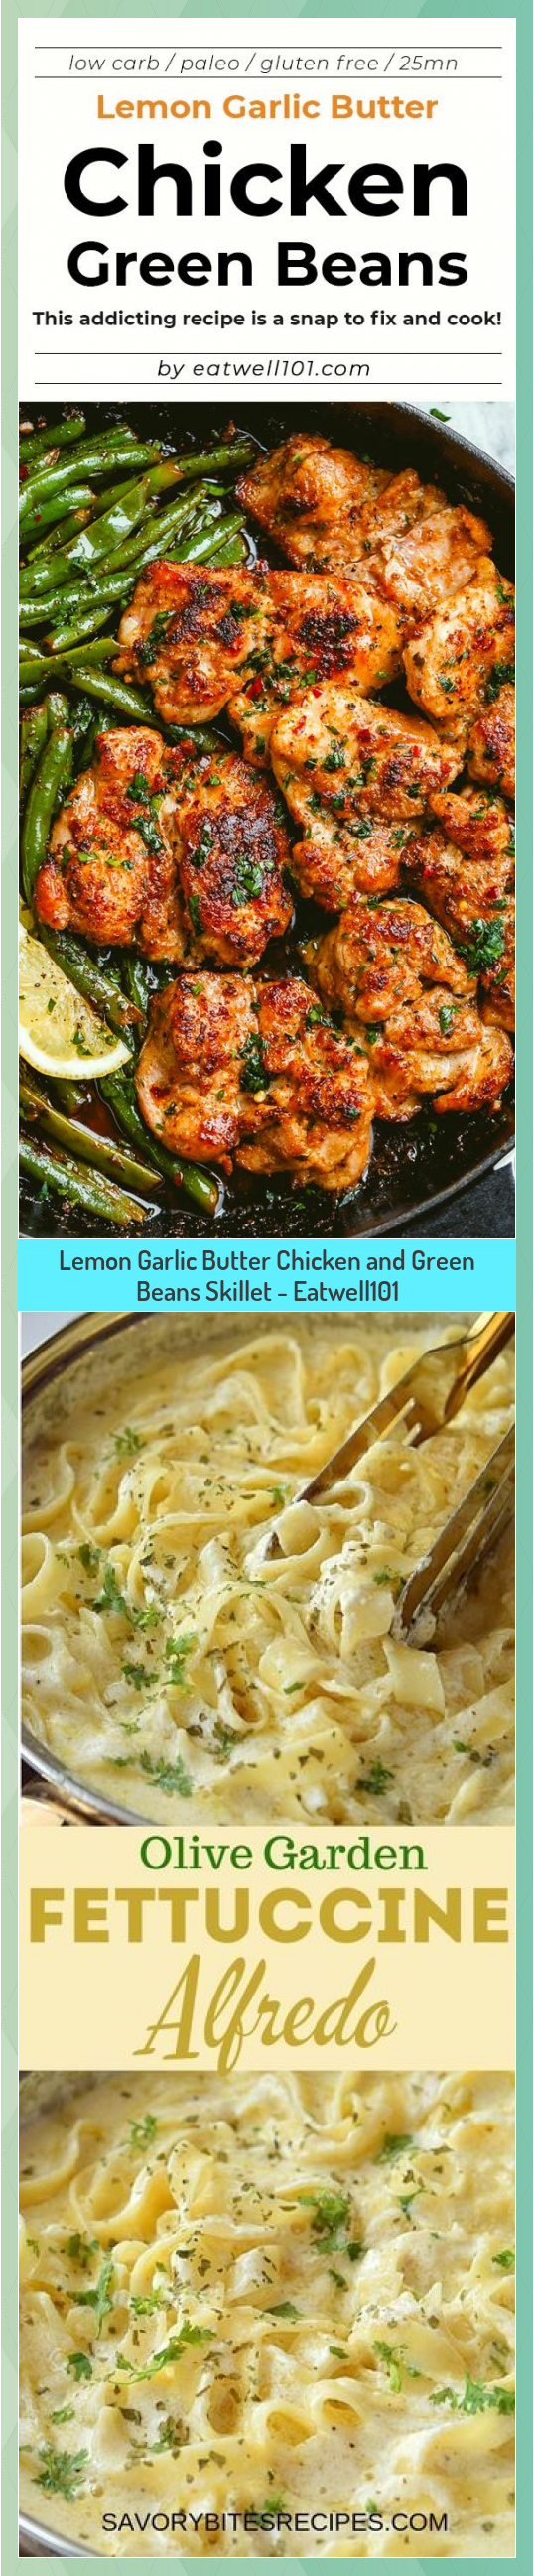 Lemon Garlic Butter Chicken and Green Beans Skillet  Eatwell101